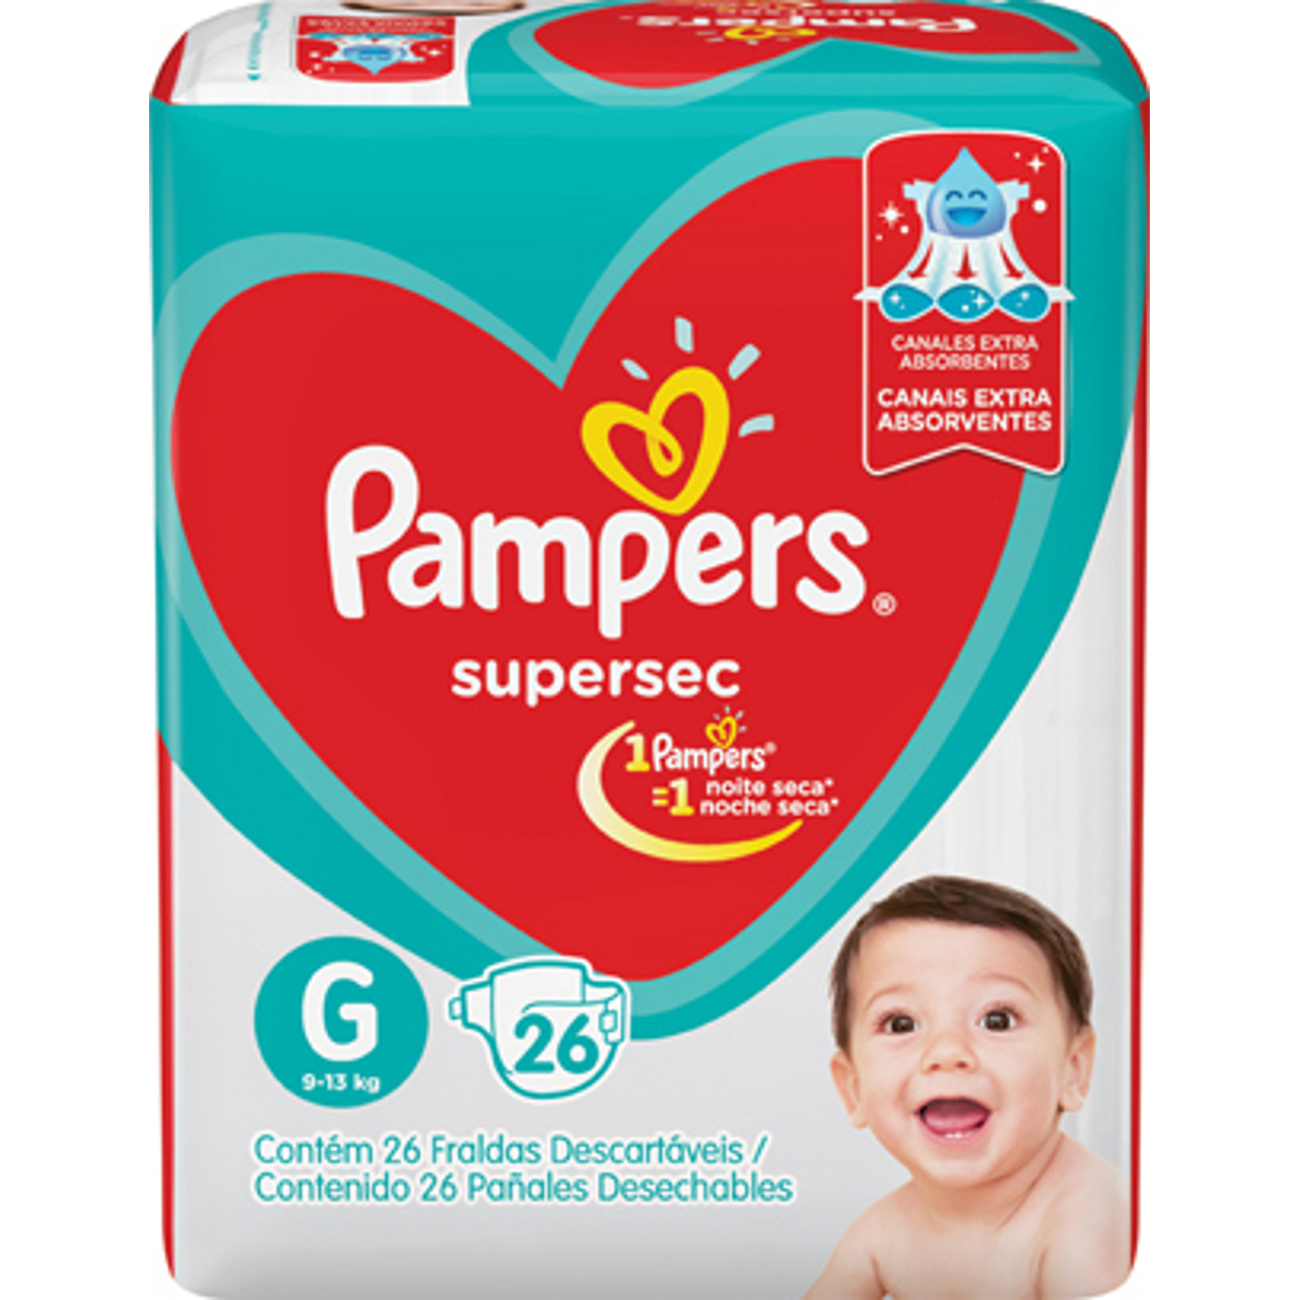 Fralda Pampers Supersec Pacotao G 26Un